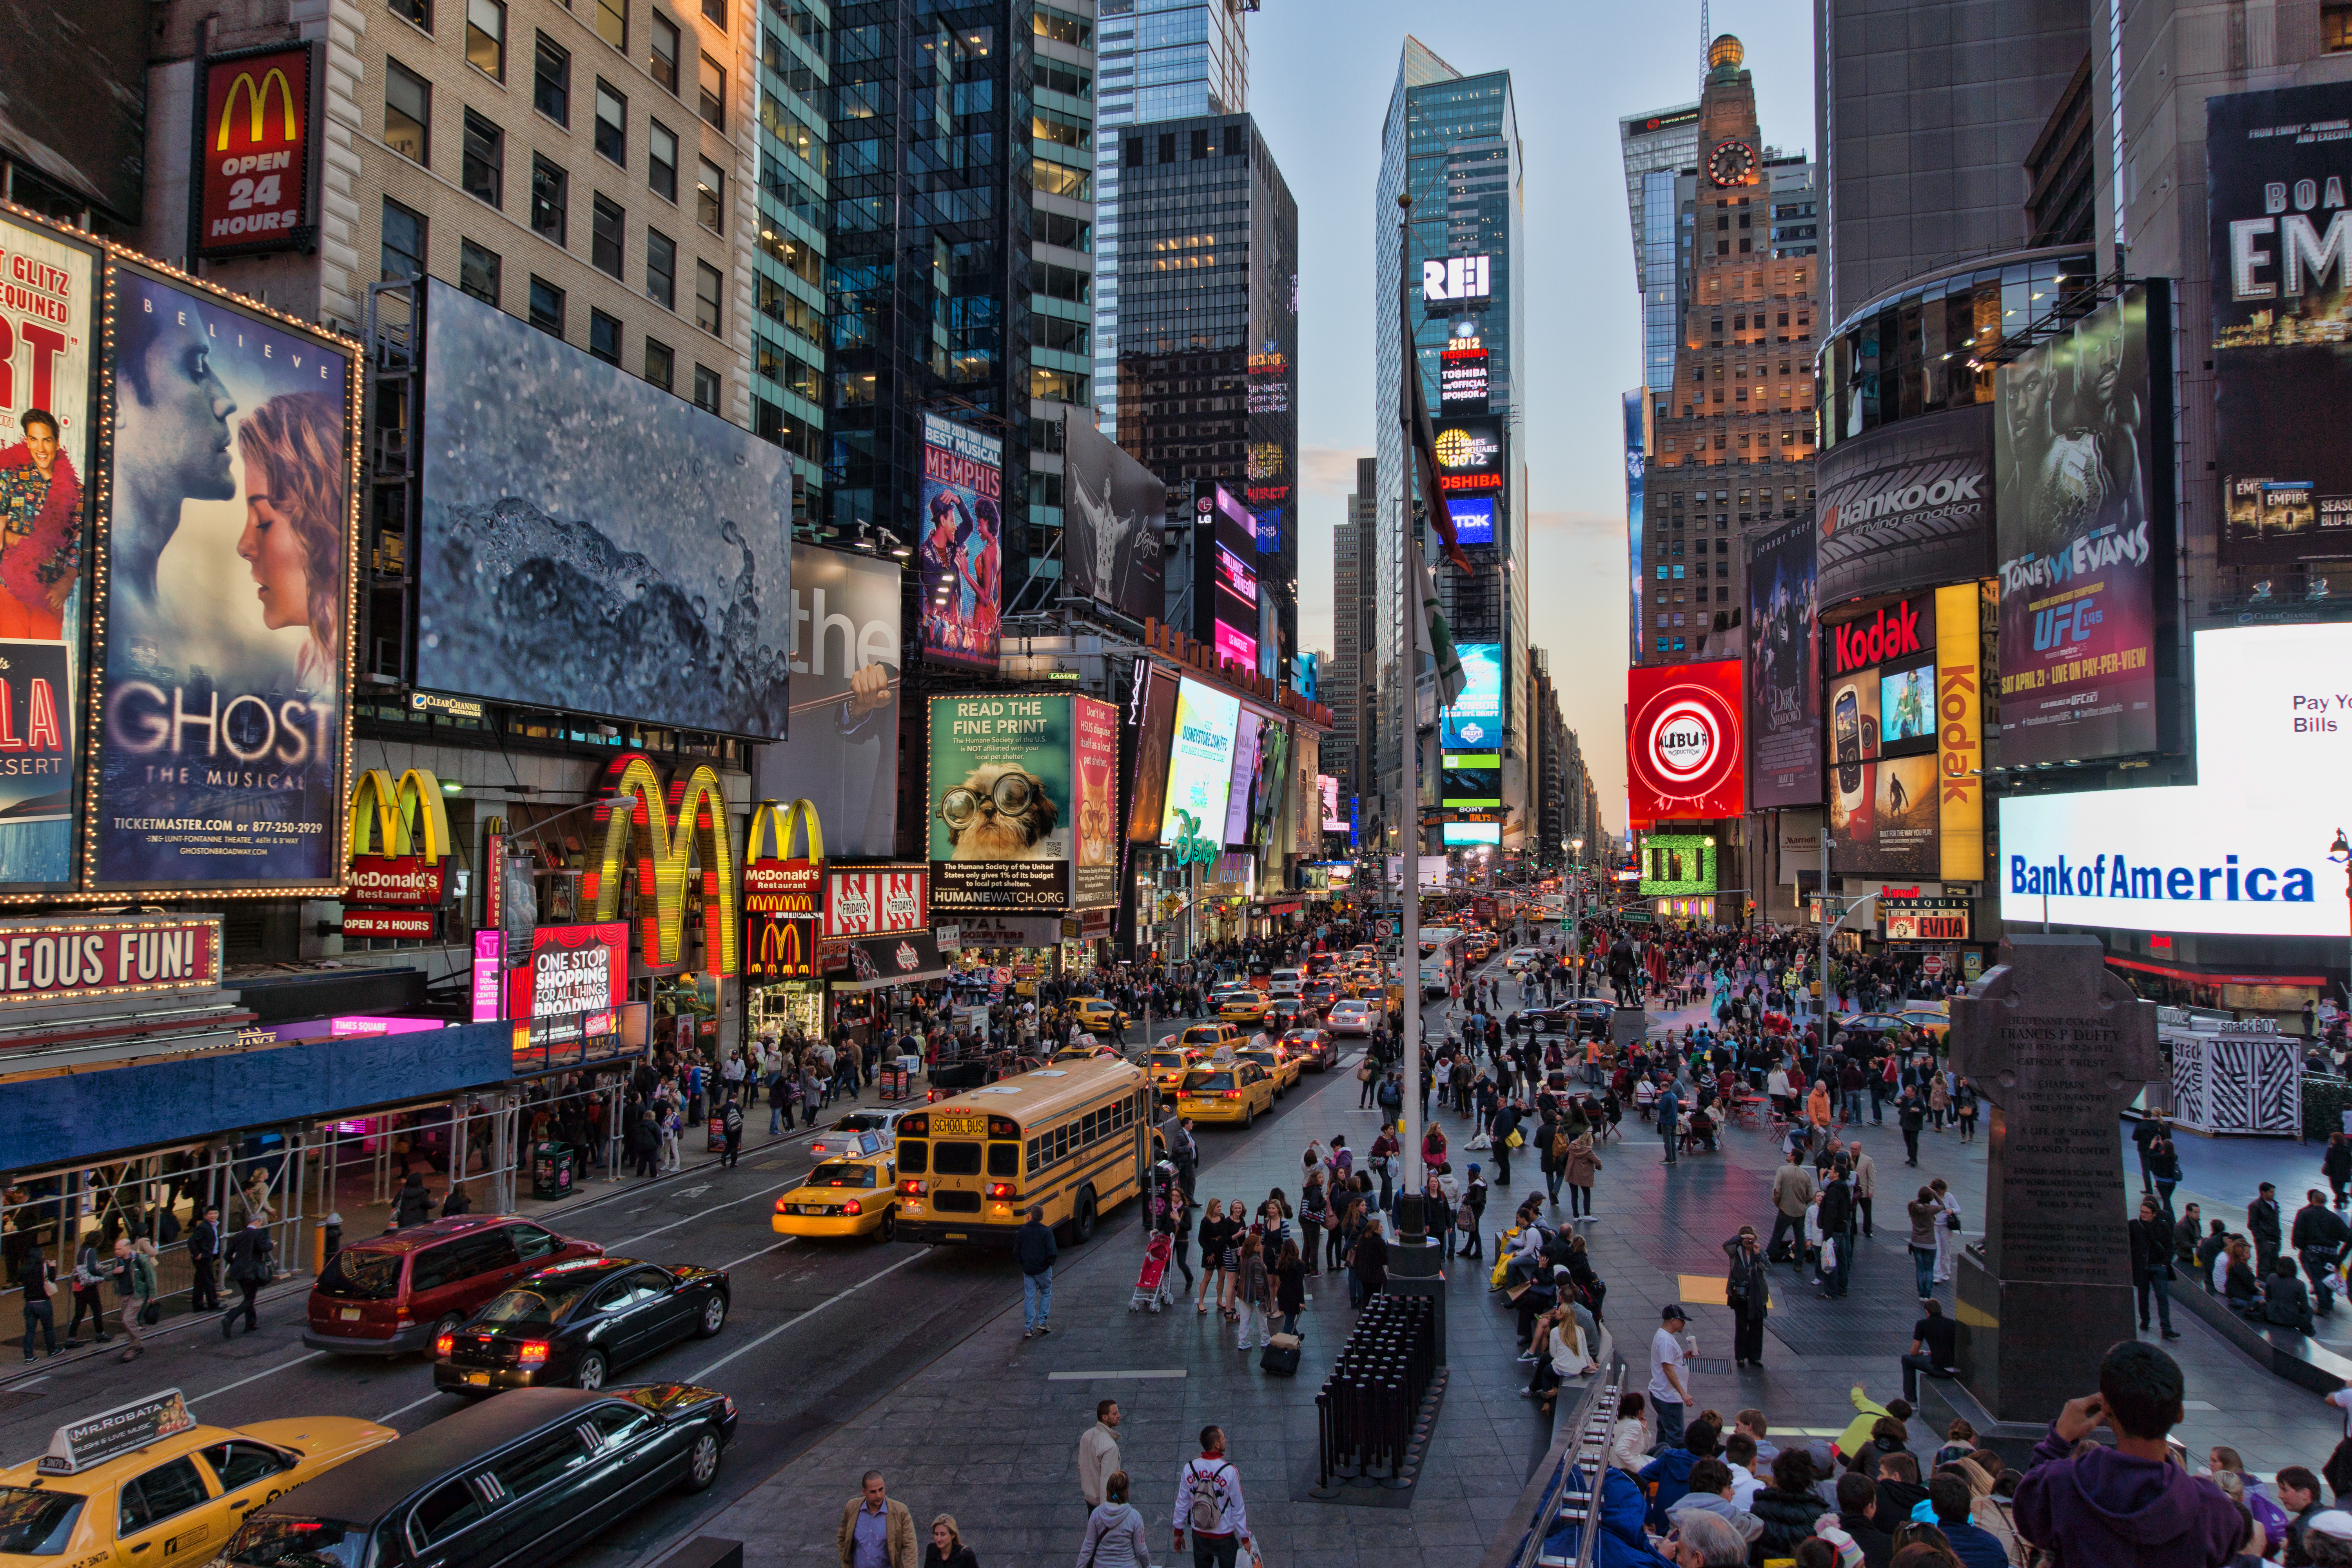 times_square_new_york_usa_city_cities_neon_lights_traffic_crowd_people__o_6000x4000